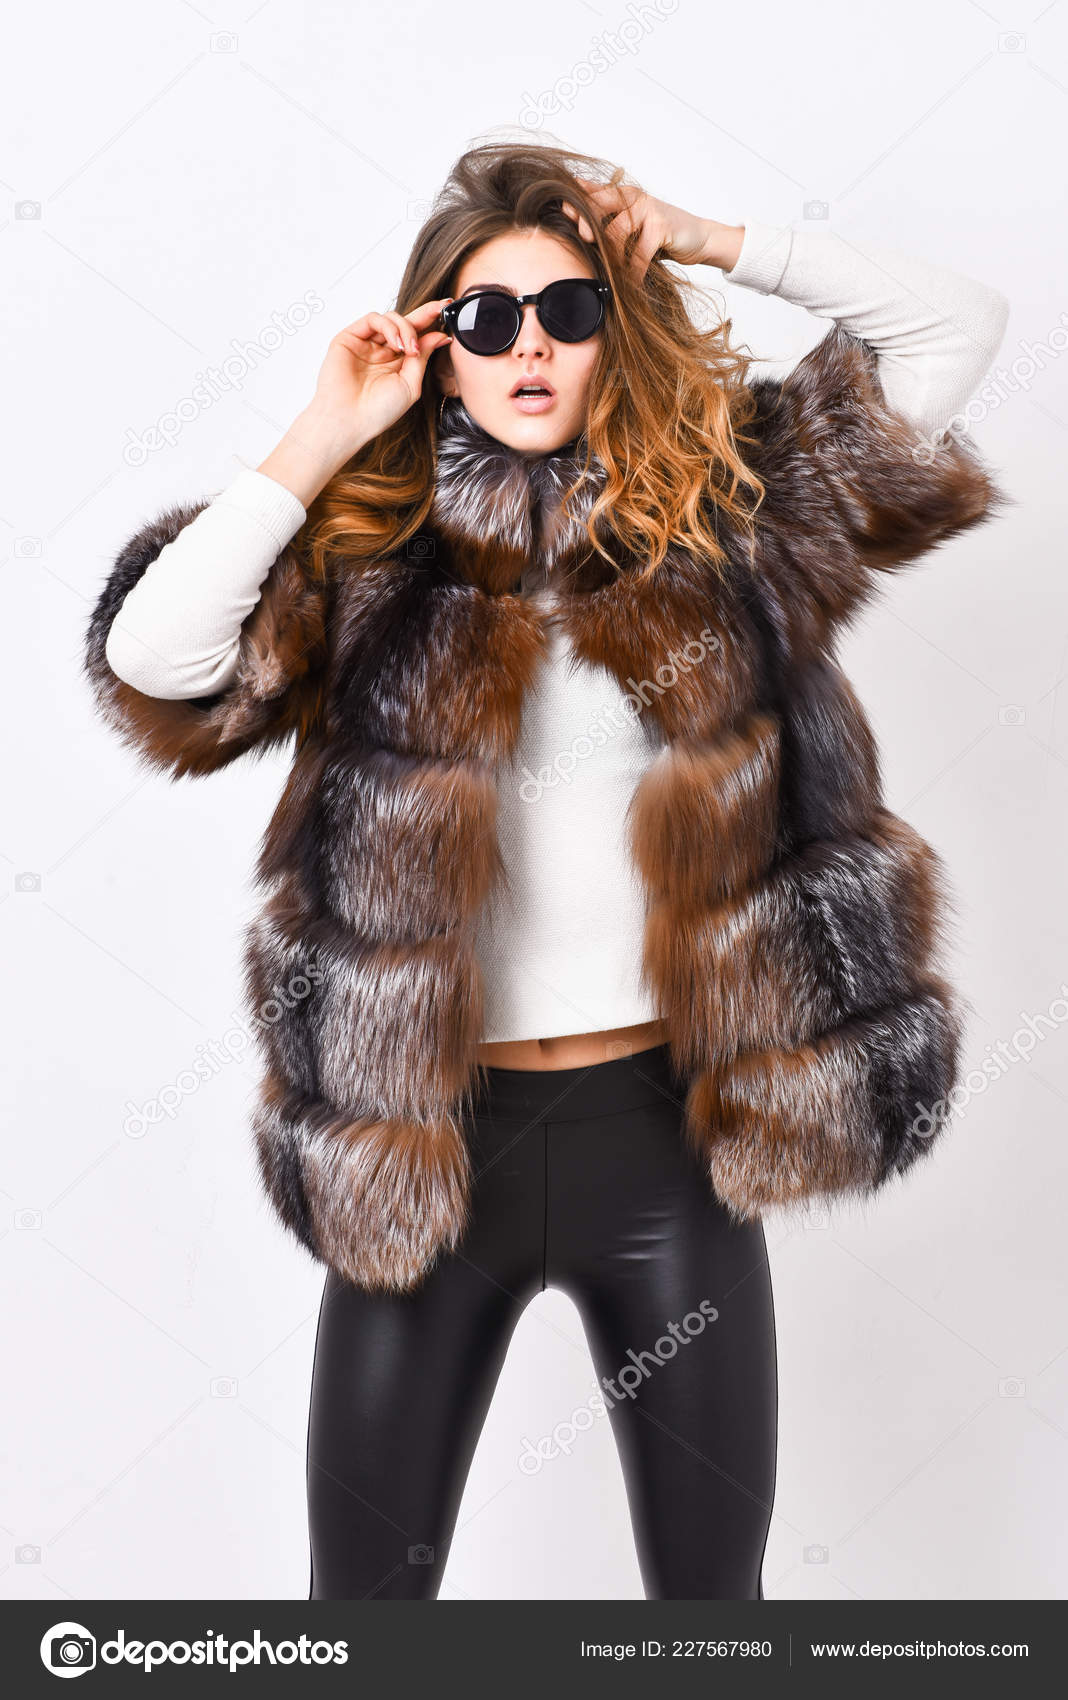 1a11b950107 Woman wear sunglasses and hairstyle posing mink or sable fur coat. Fur  fashion concept. Winter elite luxury clothes. Female brown fur coat. Fur  store model ...